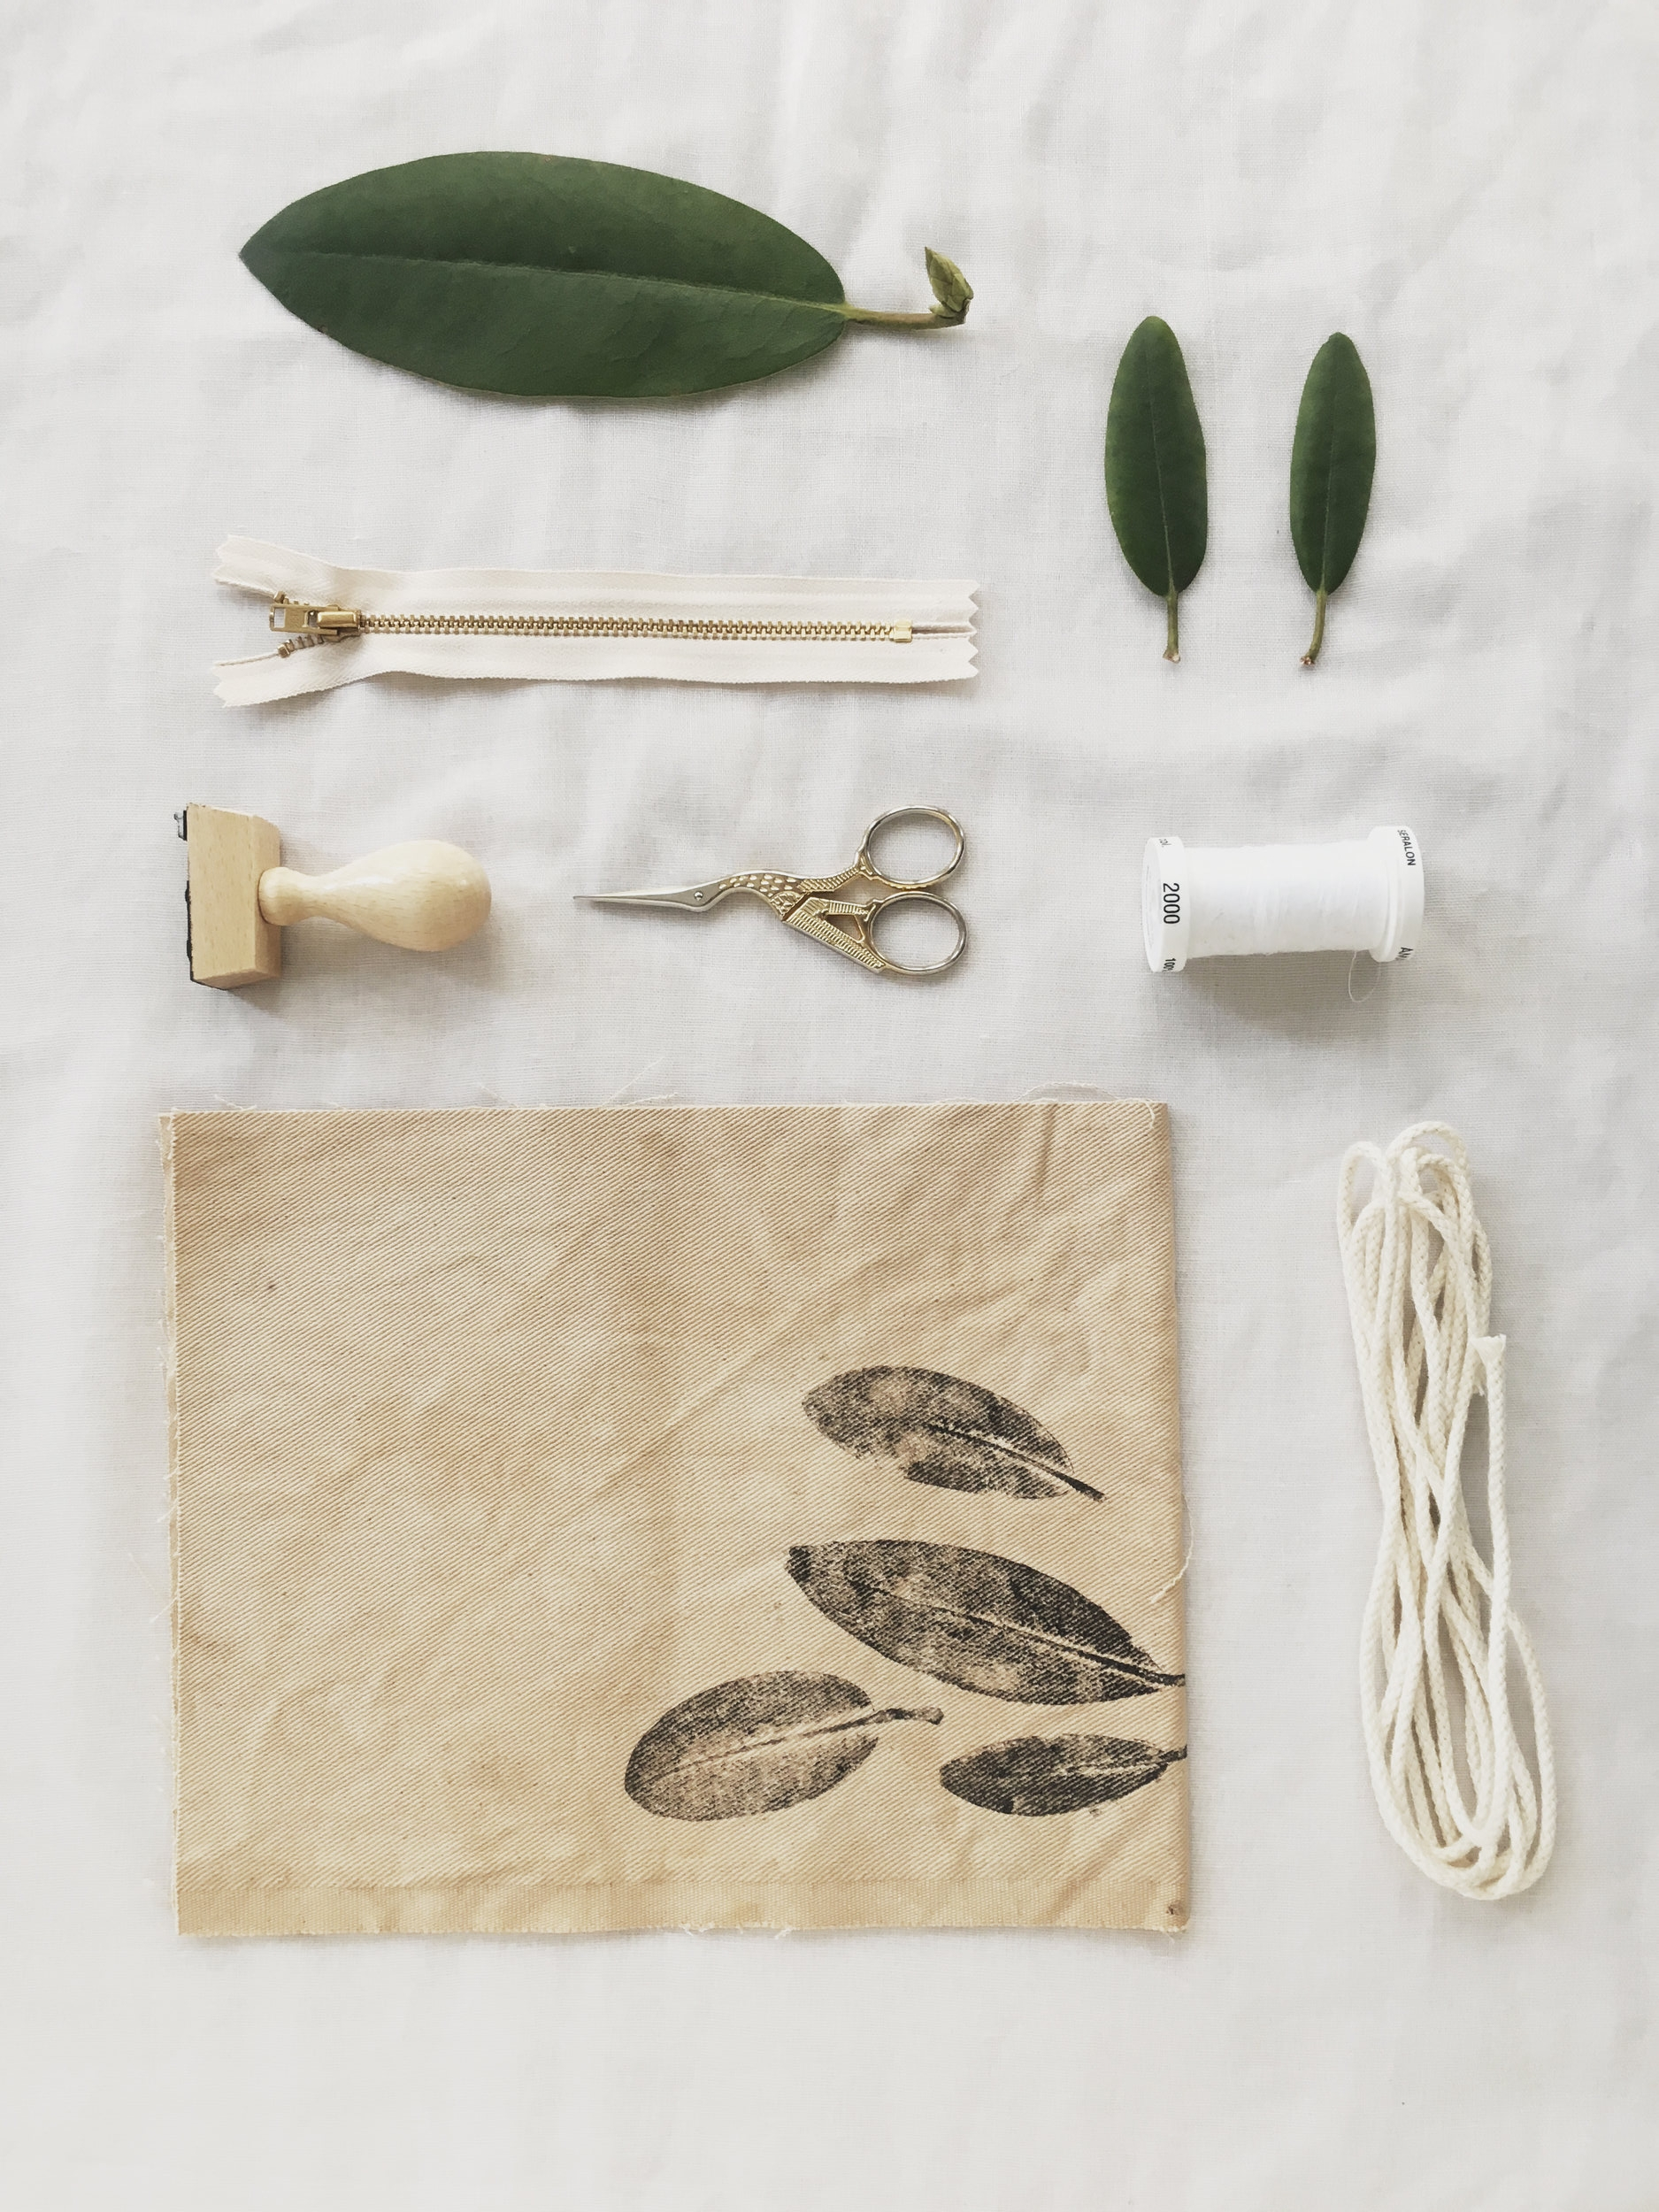 Our process - Kaliko is a Berlin-based brand offering natural textile products, founded by Ania Grzeszek. We work with certified organic fibres that we dye using local plants in our studio kitchen.Learn more